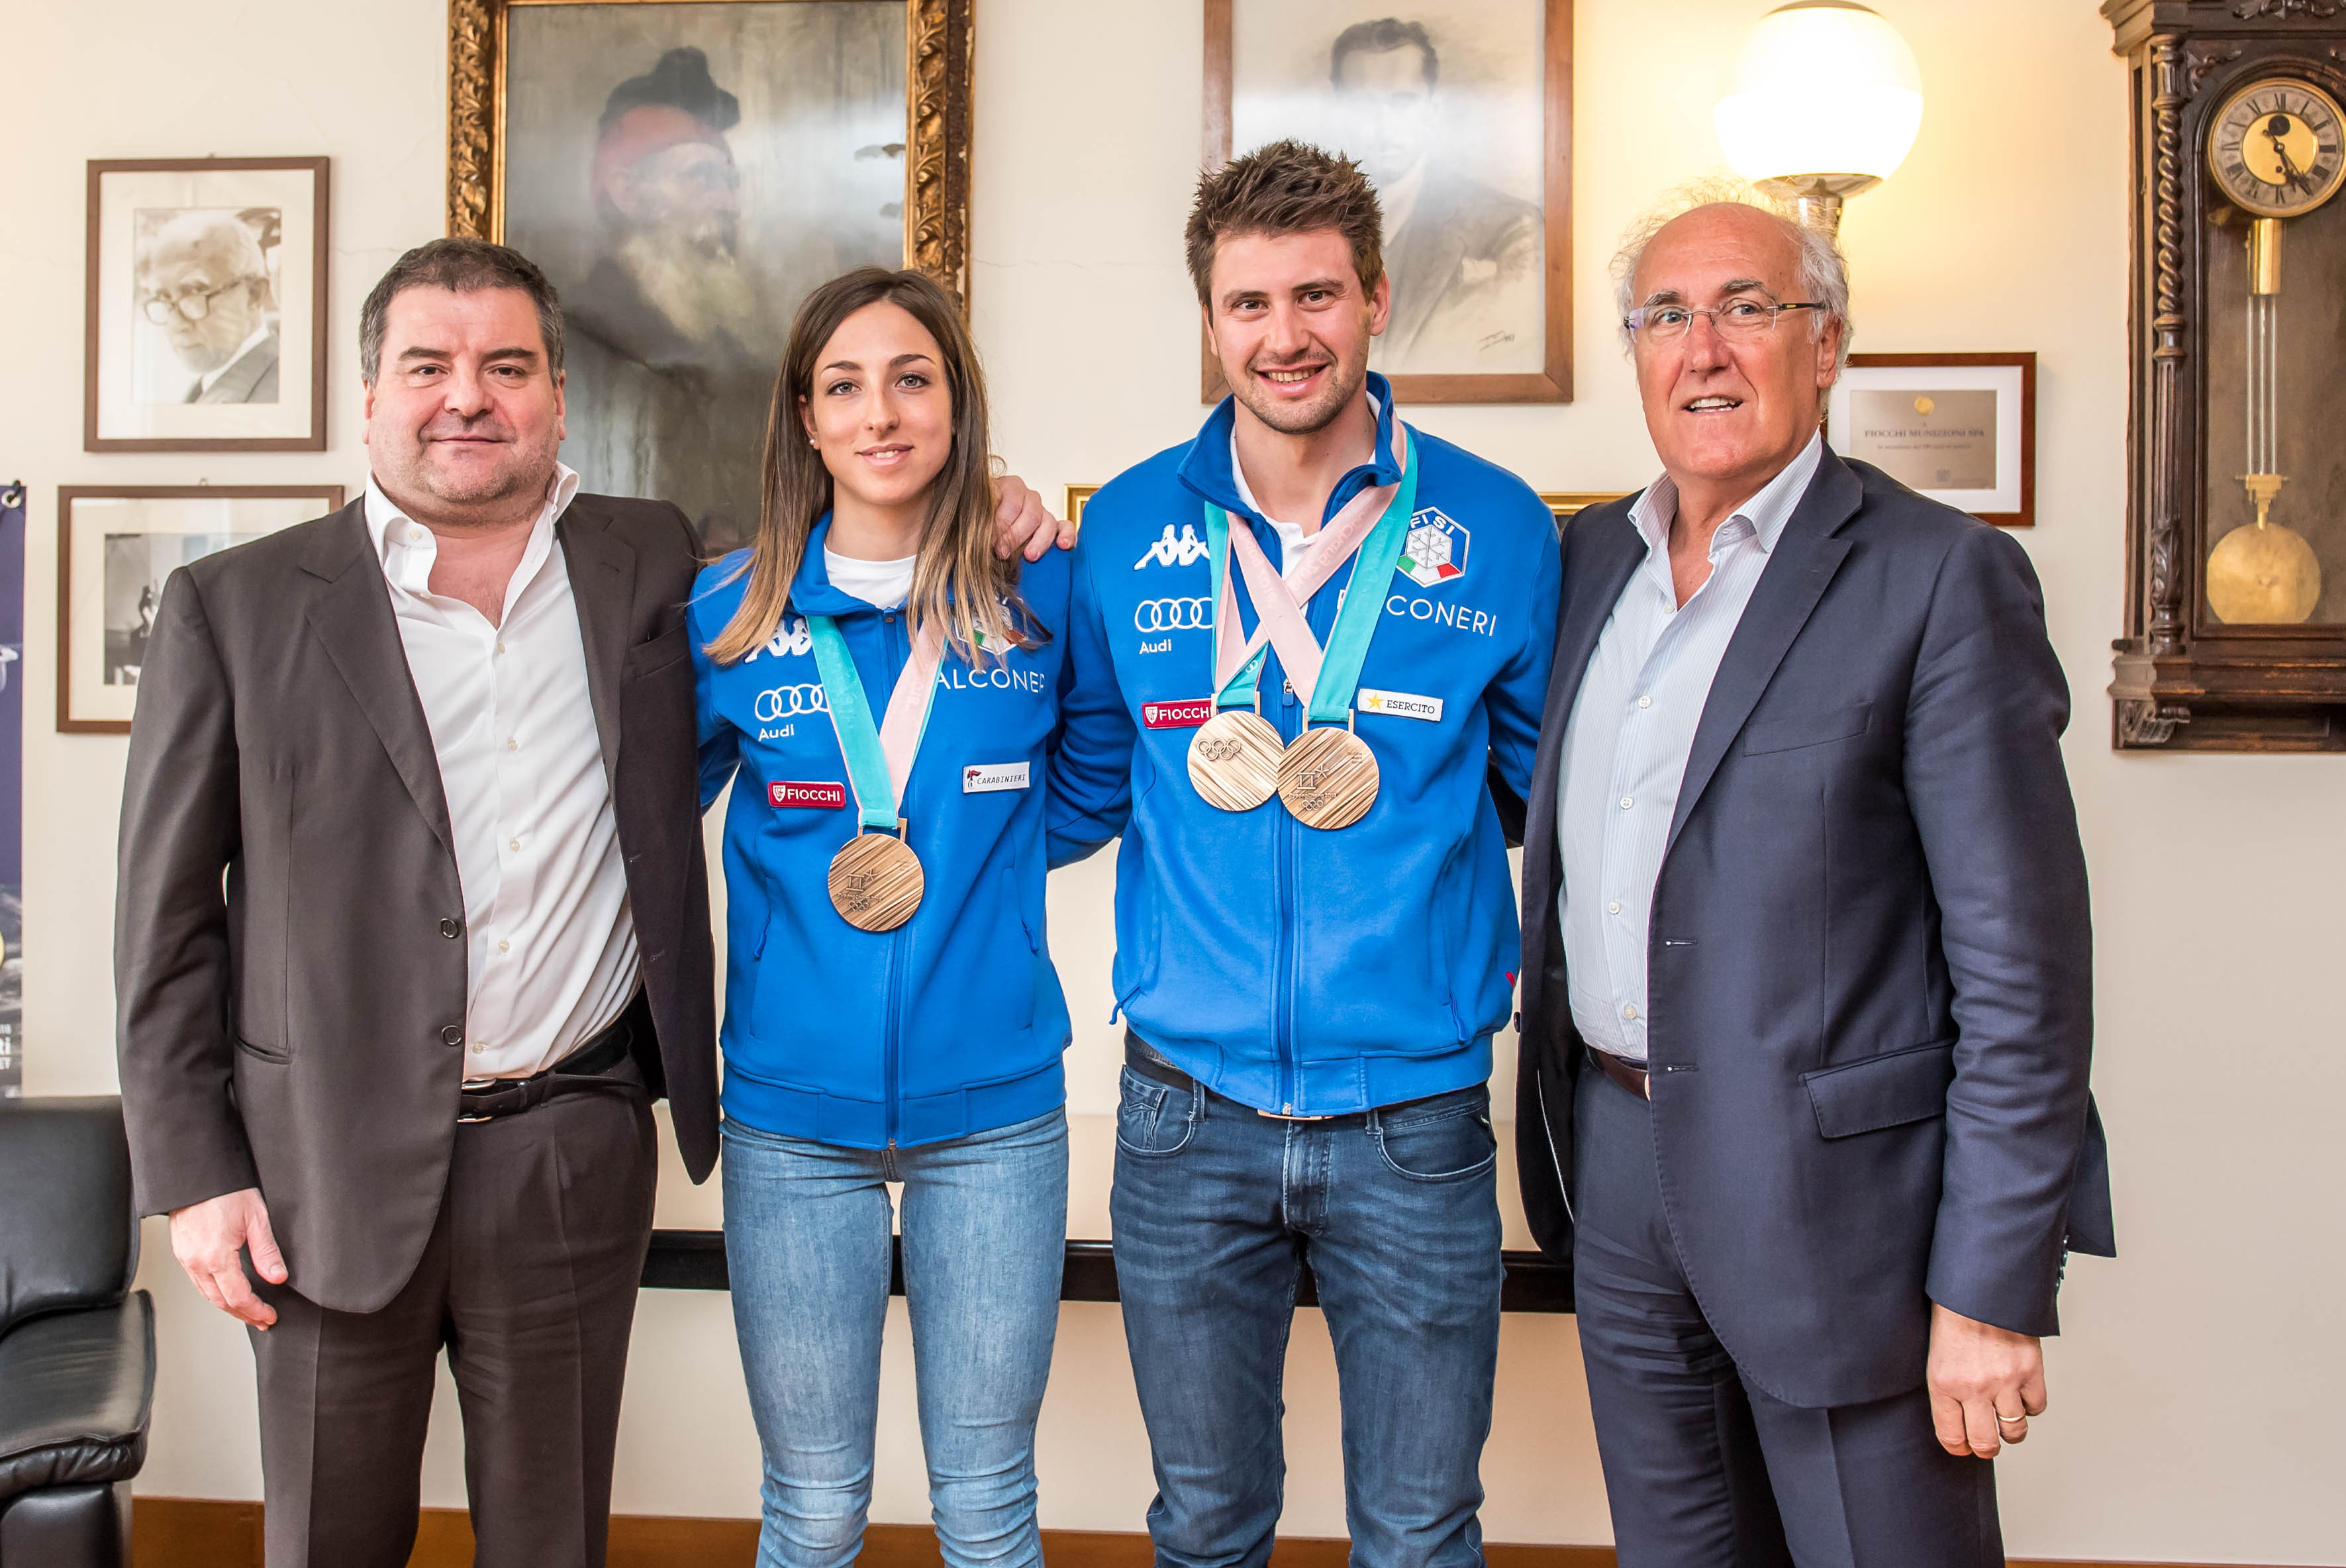 ITALIAN BIATHLON CHAMPIONS SPENT A DAY AT OUR HEADQUARTER